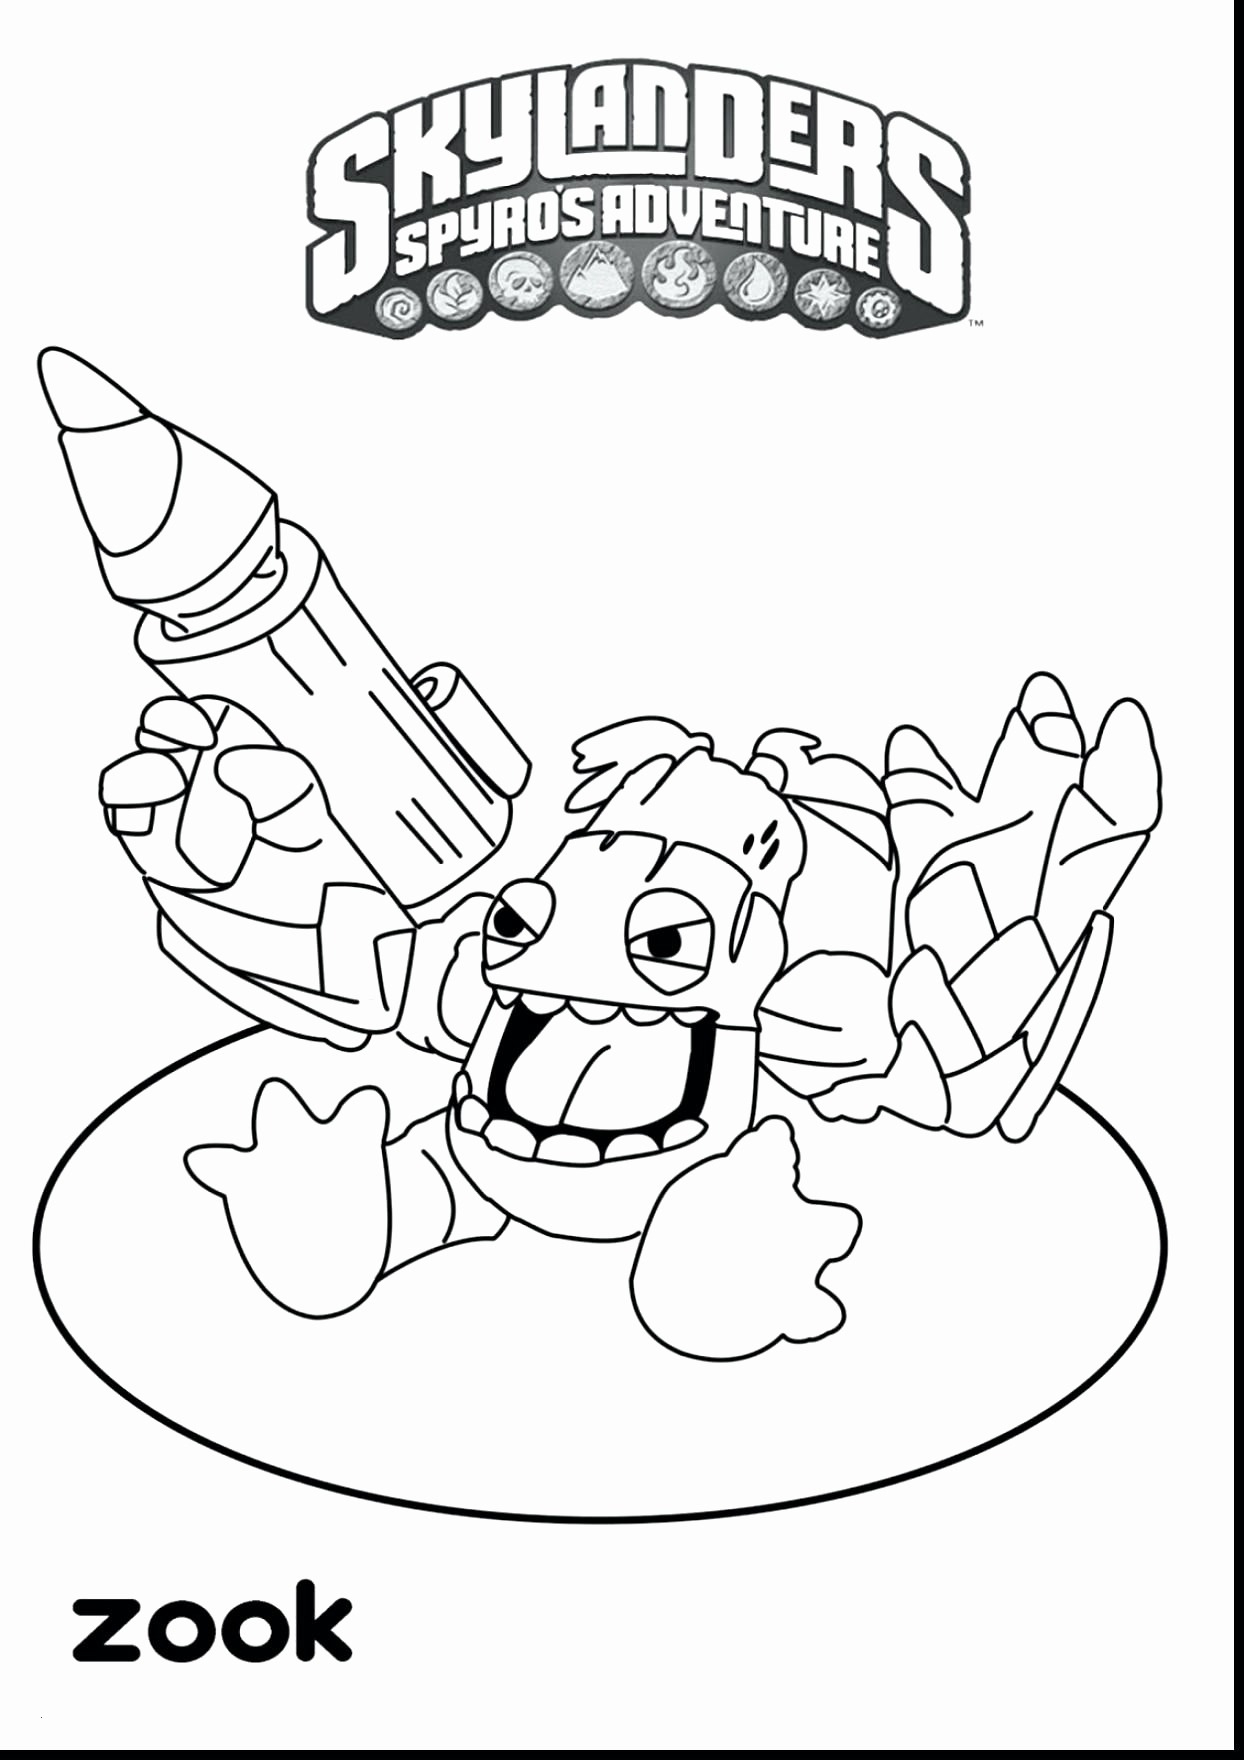 Coloring Pages Of Ducks  Printable 5e - Free For Children